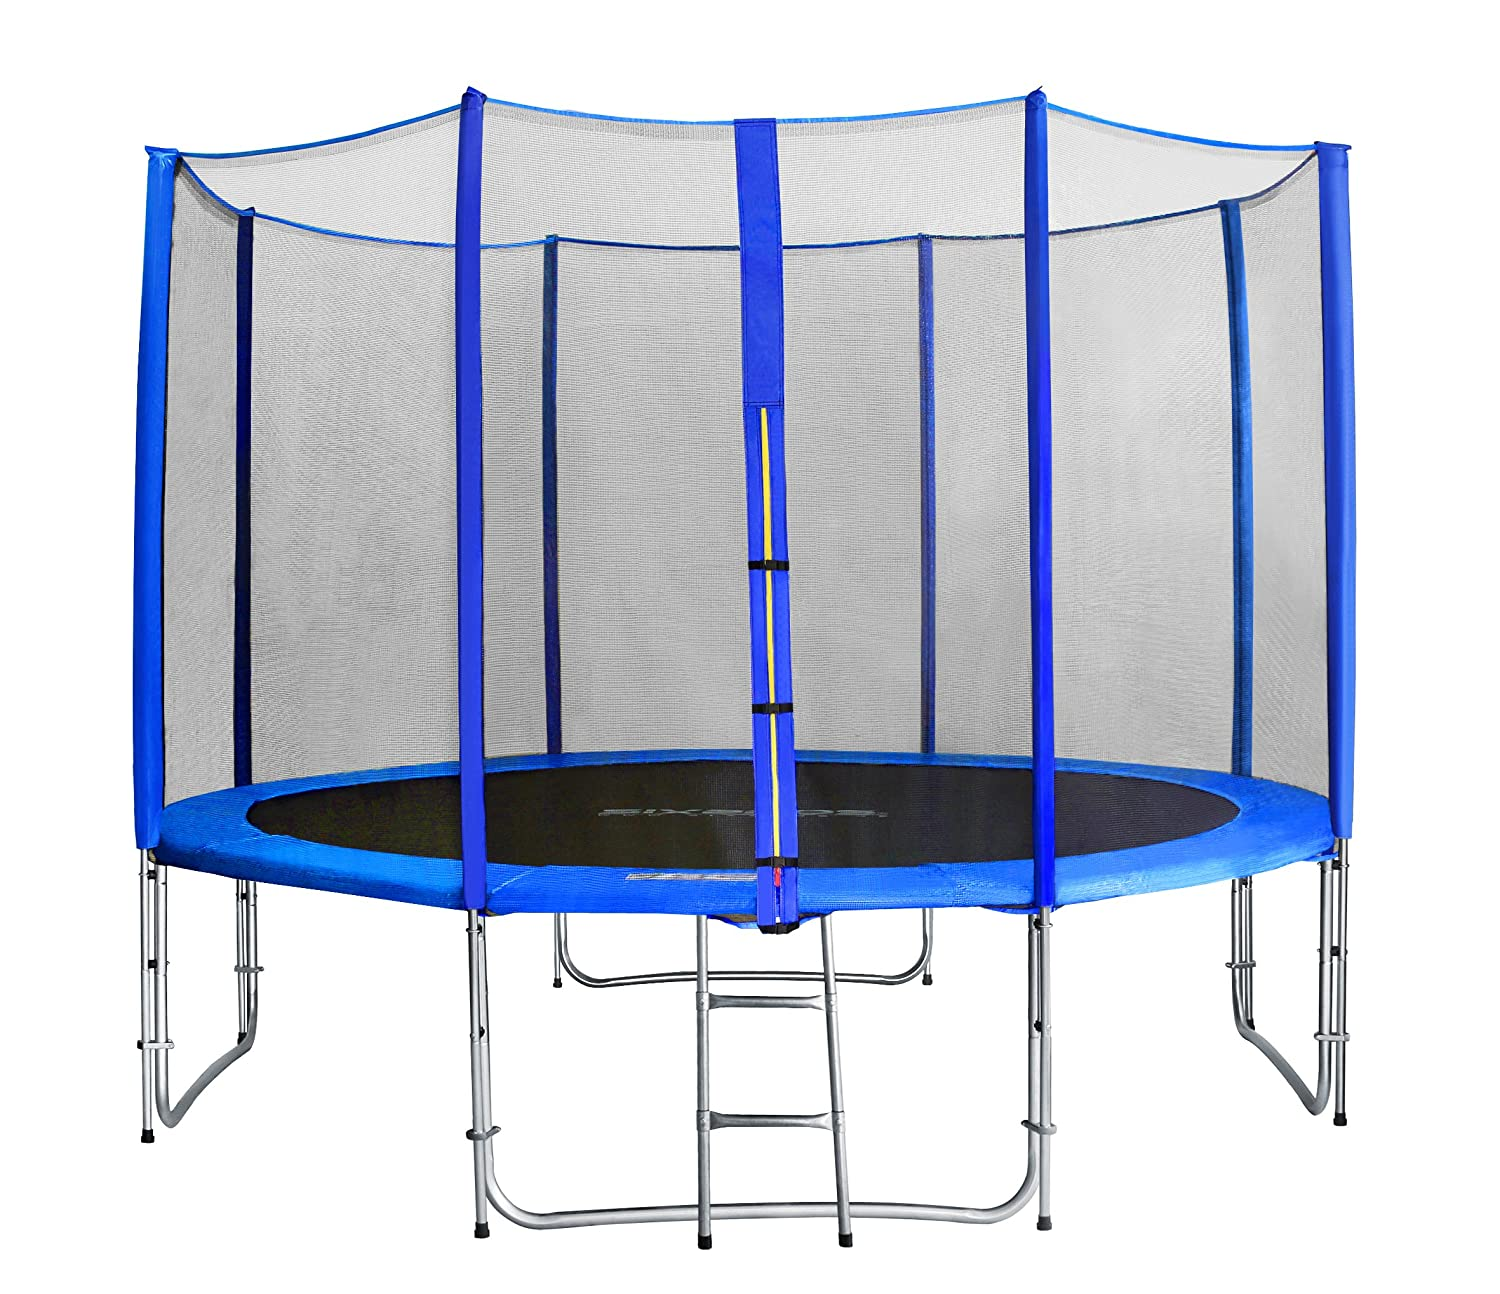 Trampoline chez decathlon for Trampoline exterieur decathlon